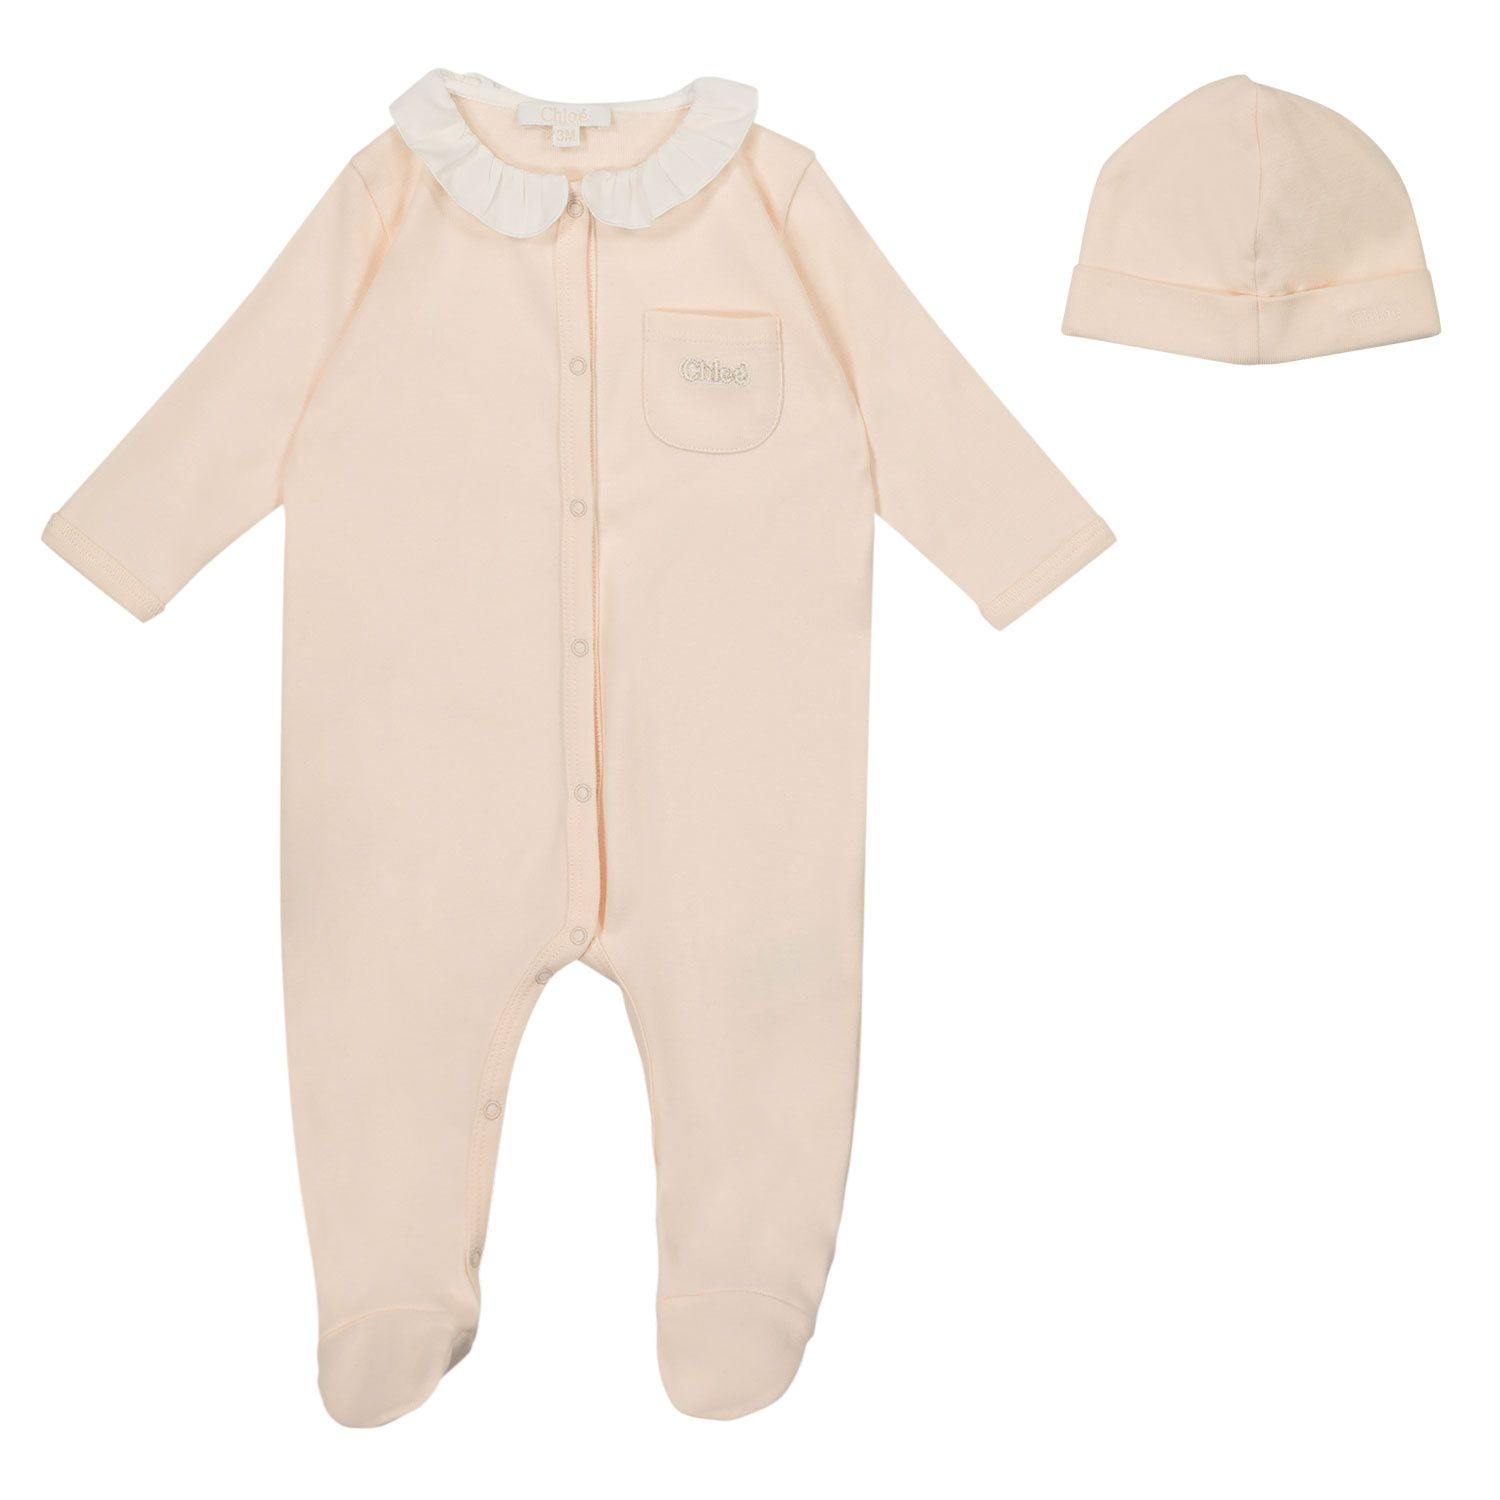 Picture of Chloé C97266 baby playsuit salmon